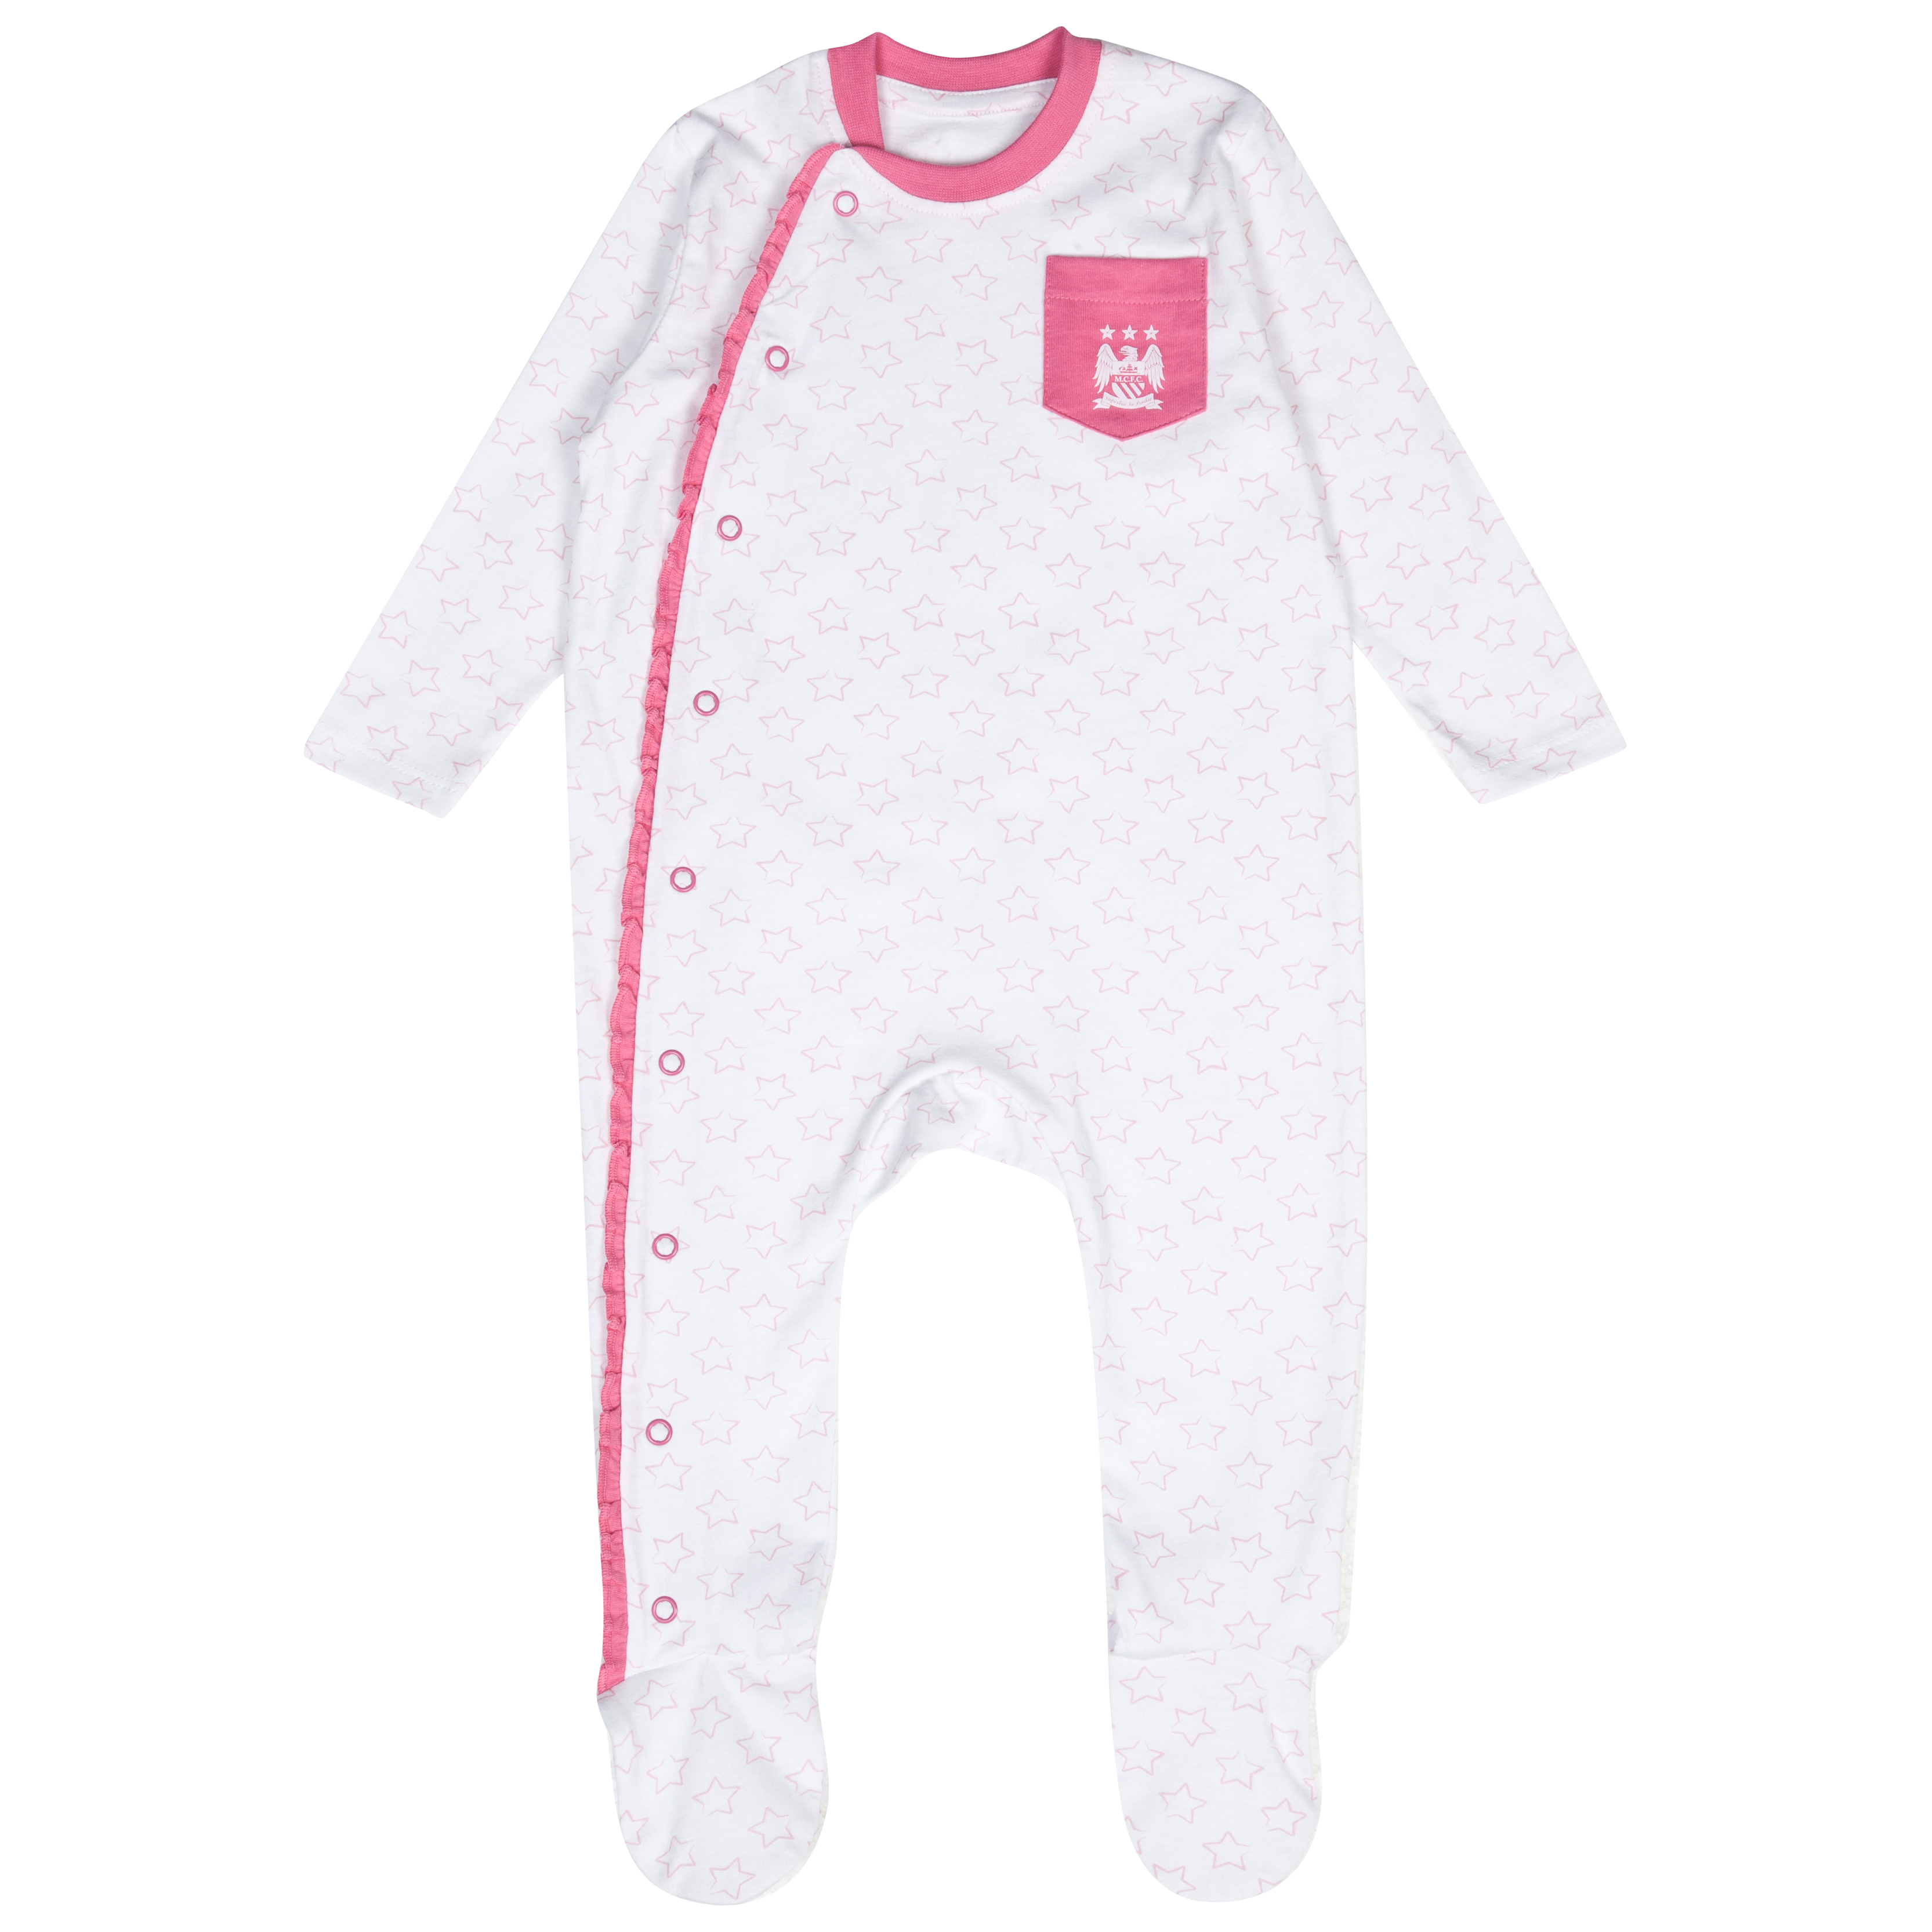 Manchester City Frill Sleepsuit - White/Pink - Baby